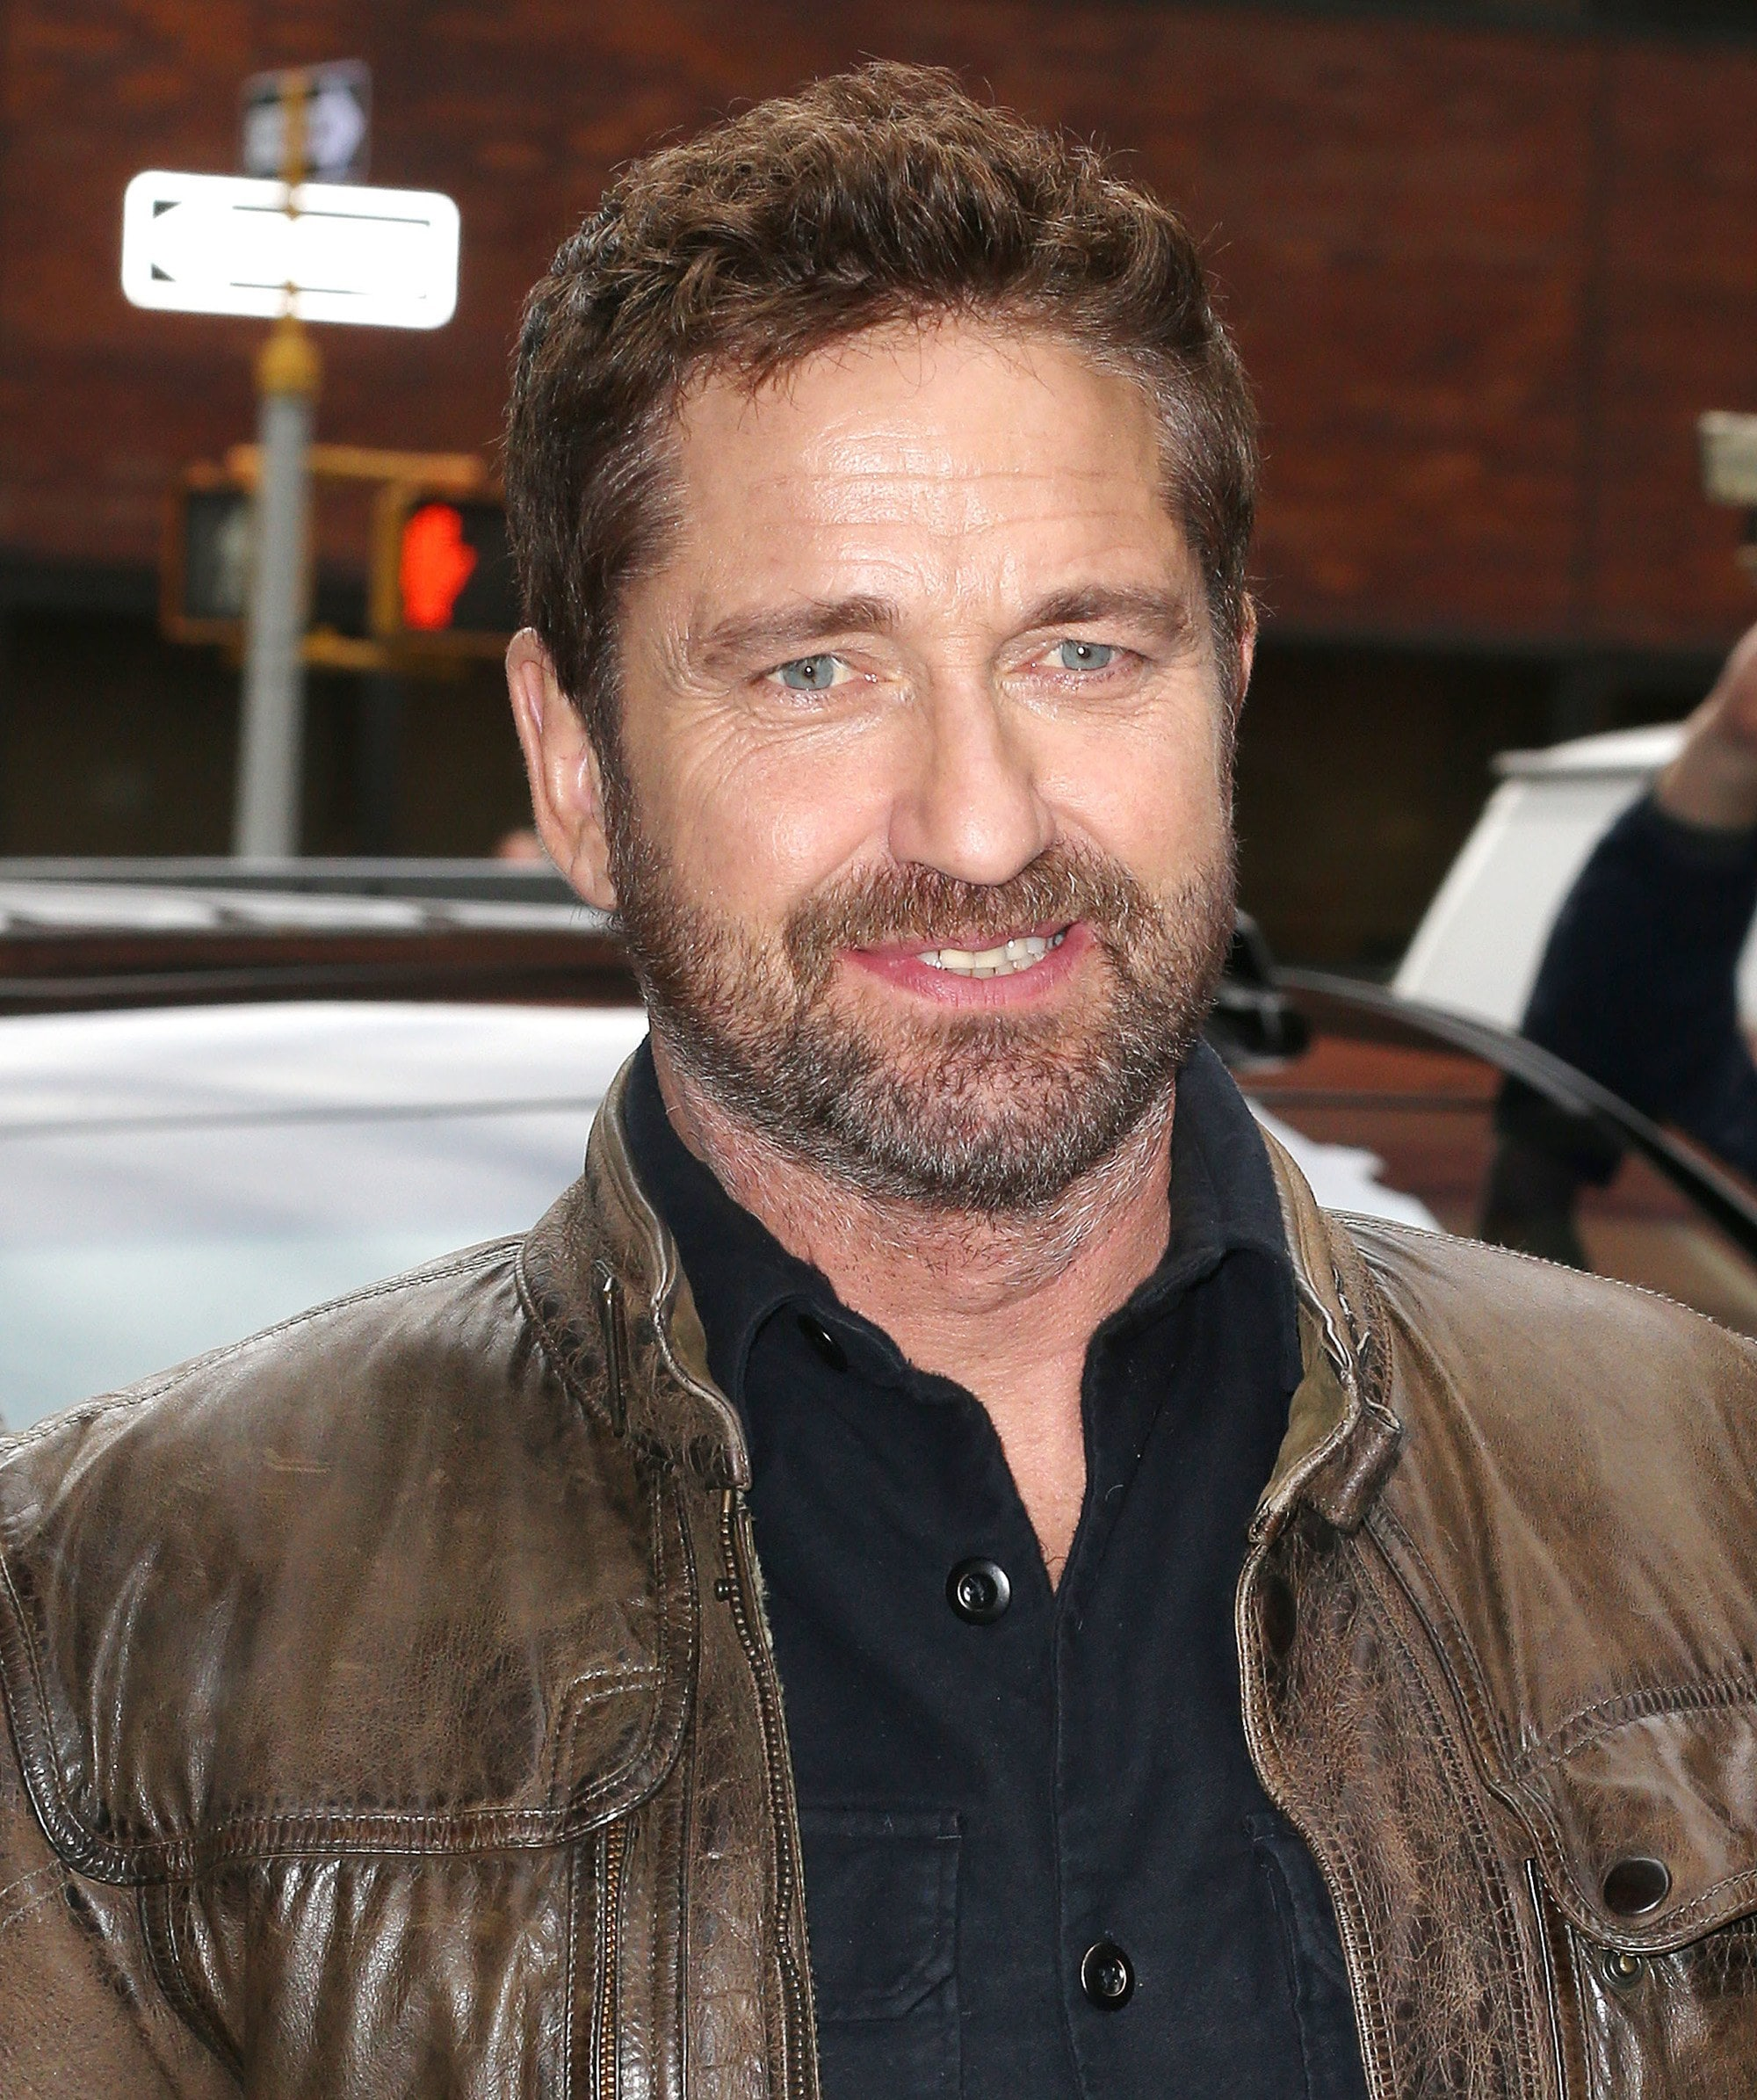 Hairstyles for men over 40: Gerard Butler with short curly brown hair and stubbly facial hair,wearing a shirt and a brown leather jacket